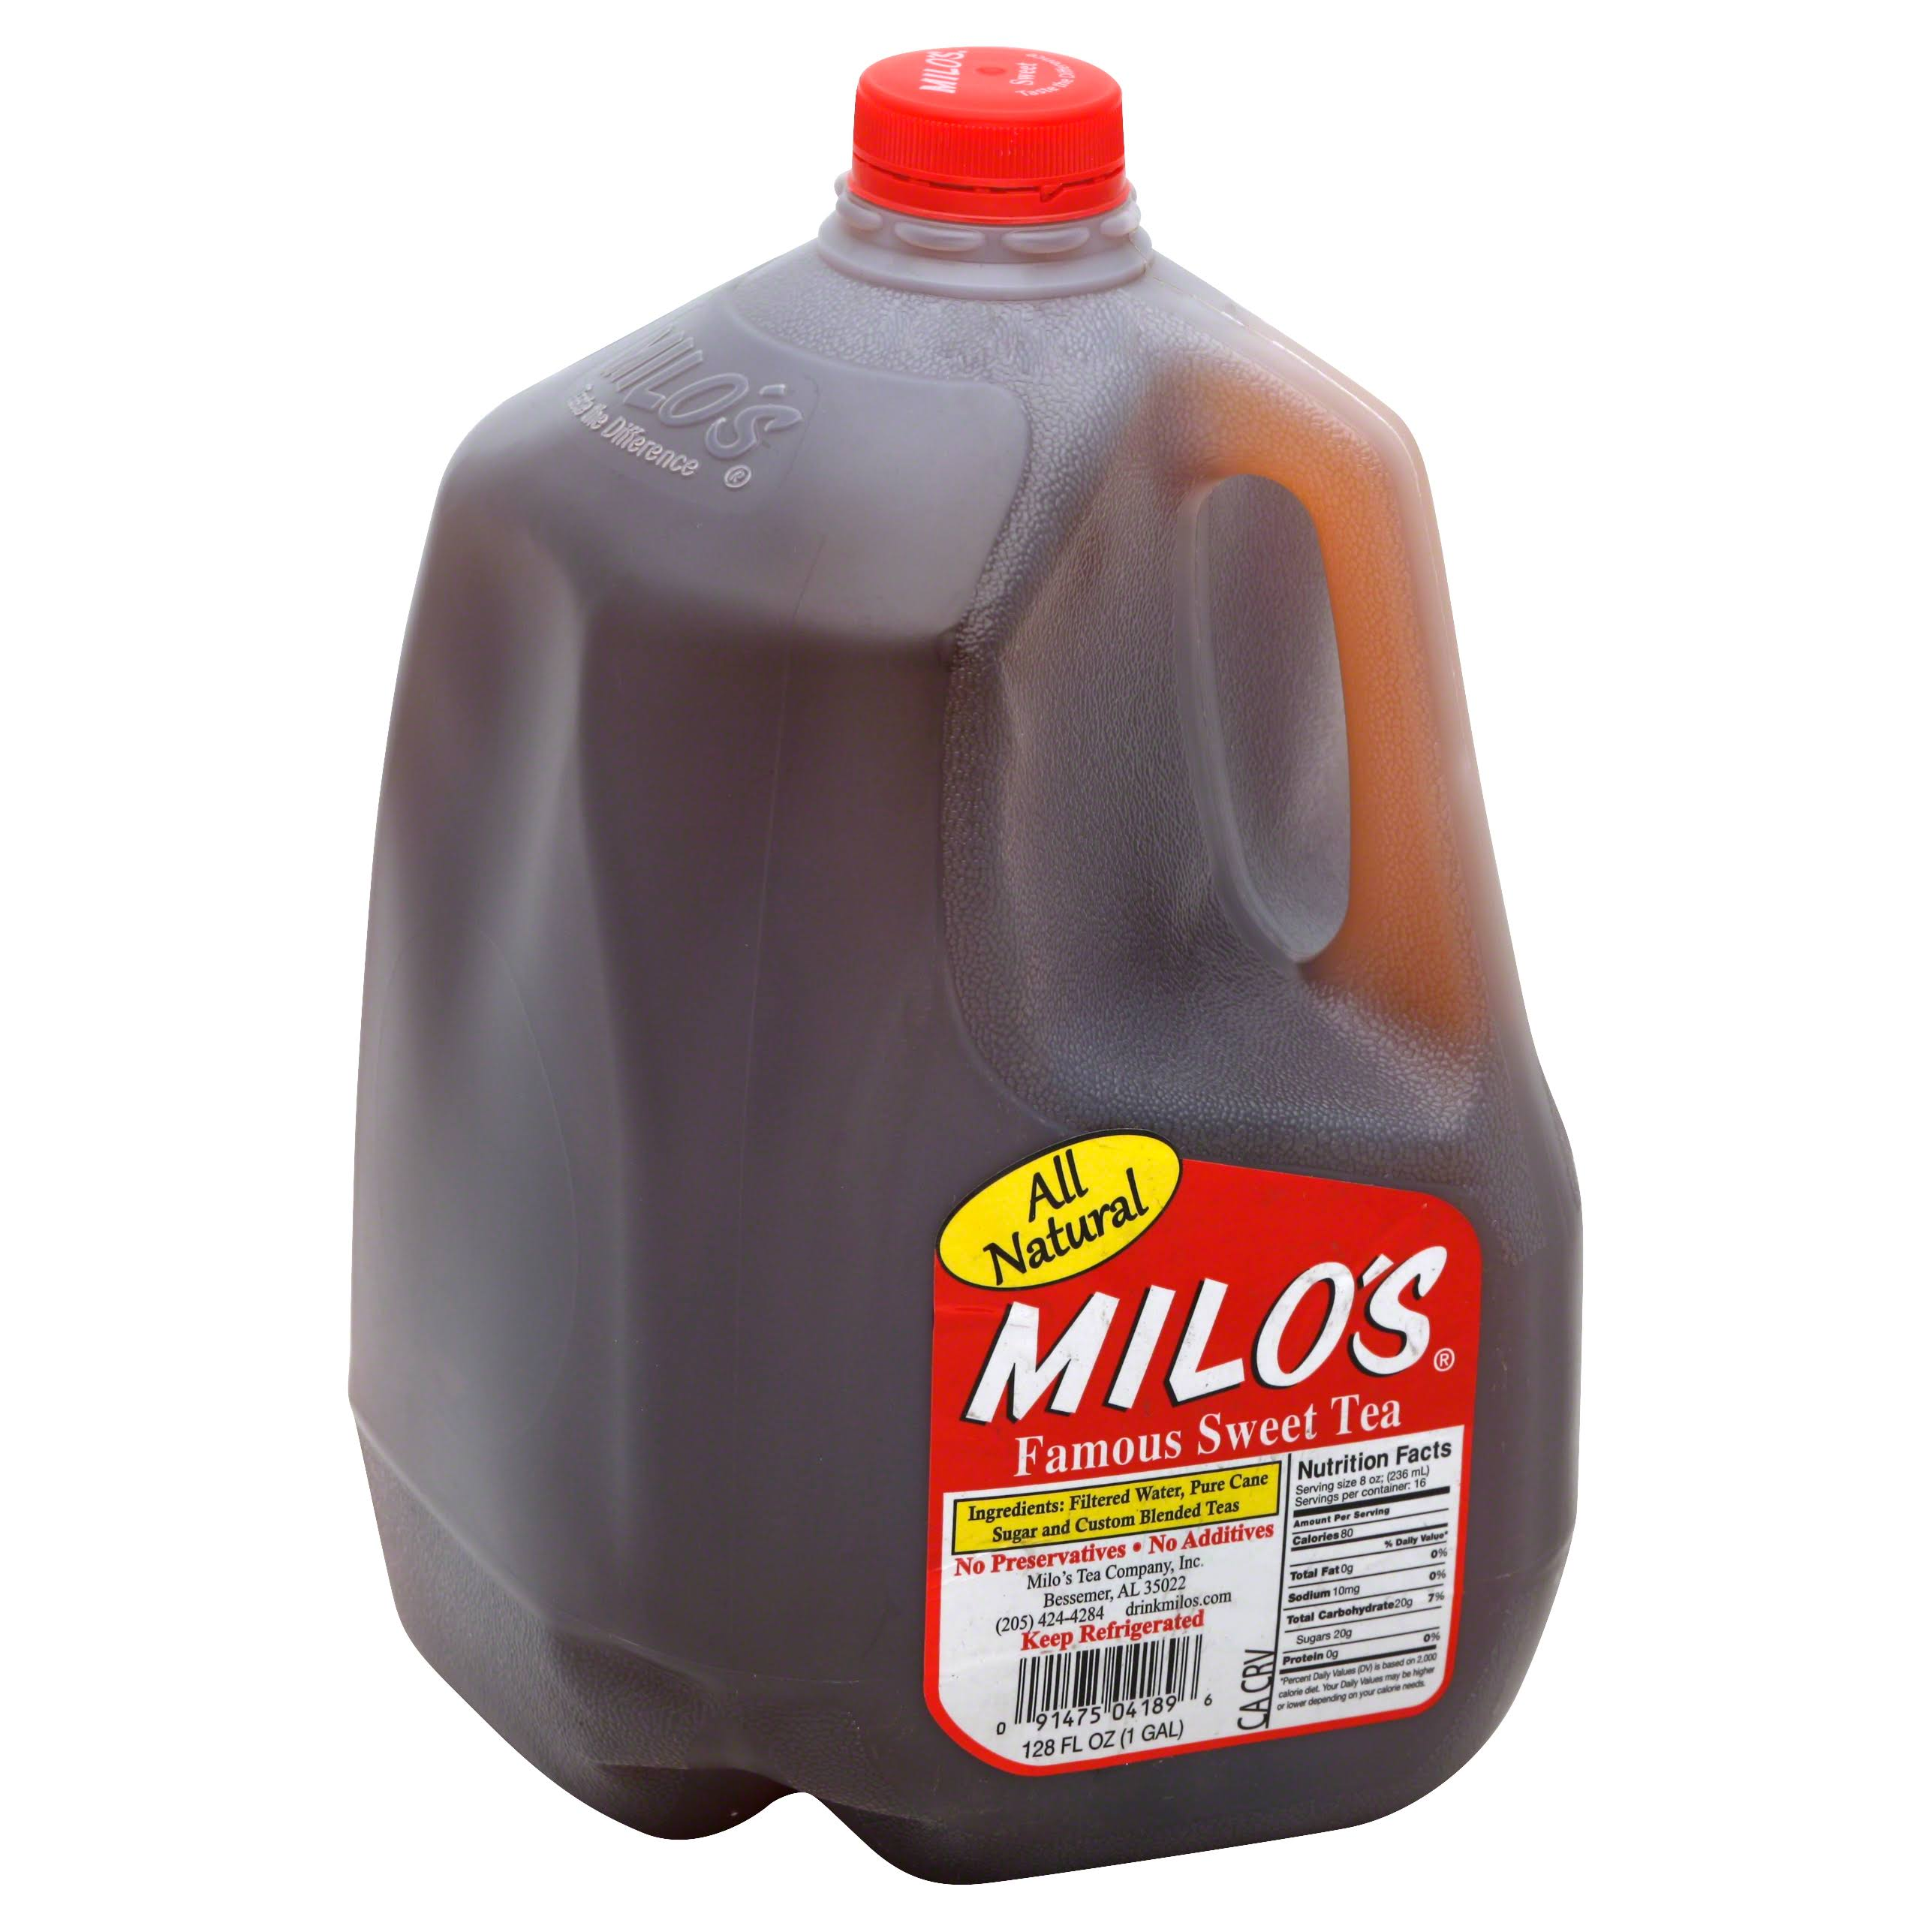 Milo's Famous Sweet Tea - All Natural, 128oz